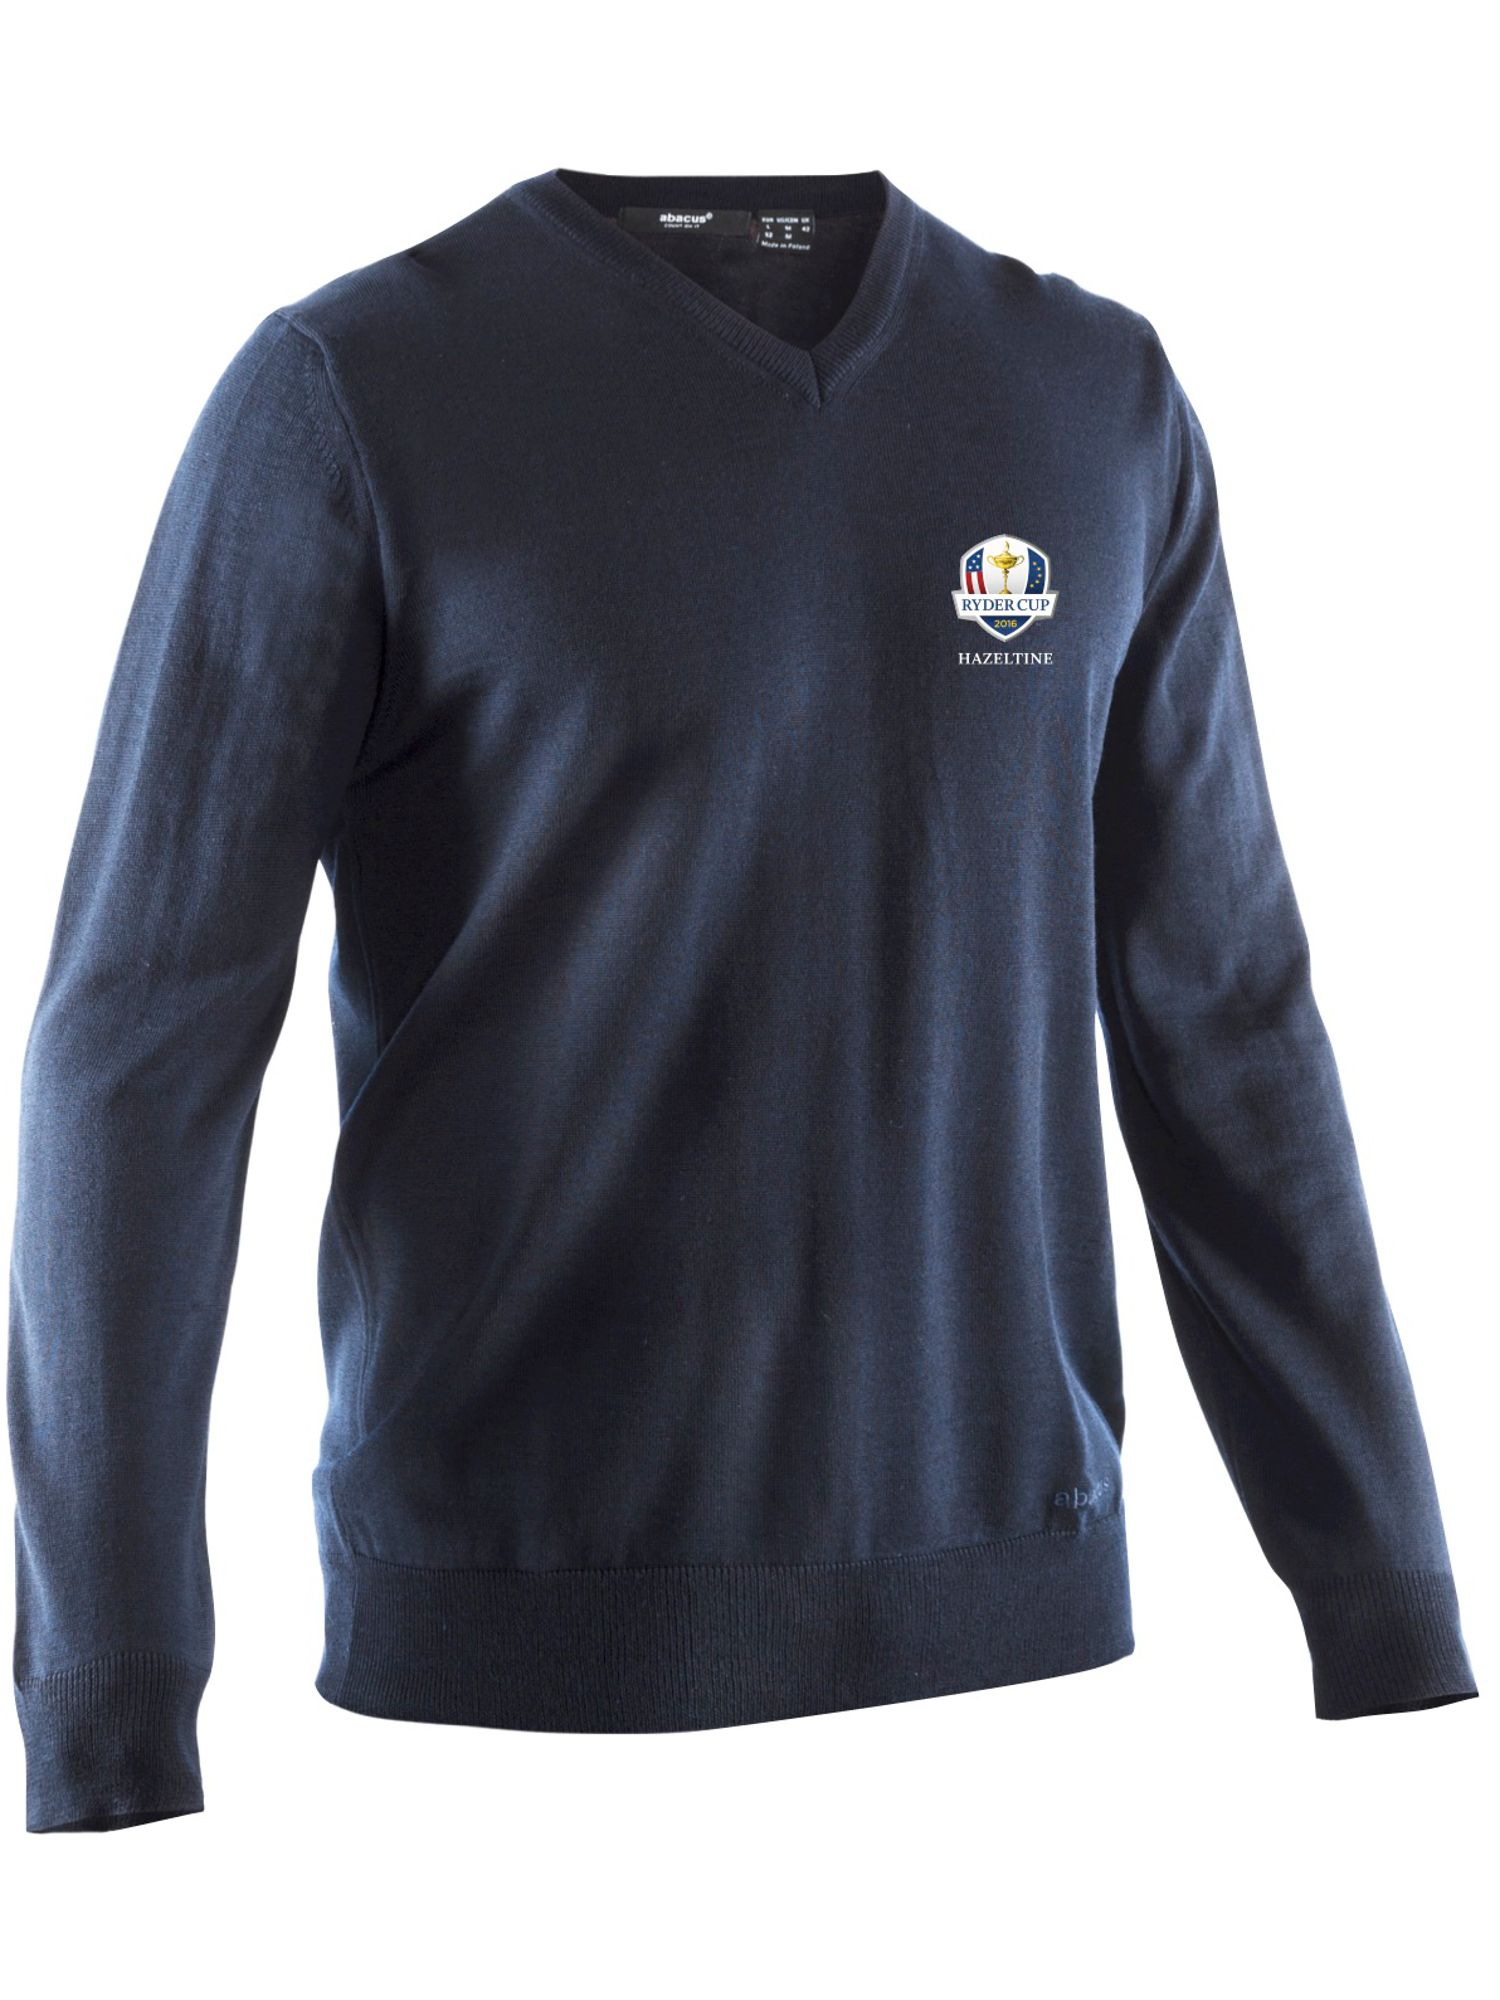 Abacus Men's Abacus Milano Ryder Cup Jumper, Navy